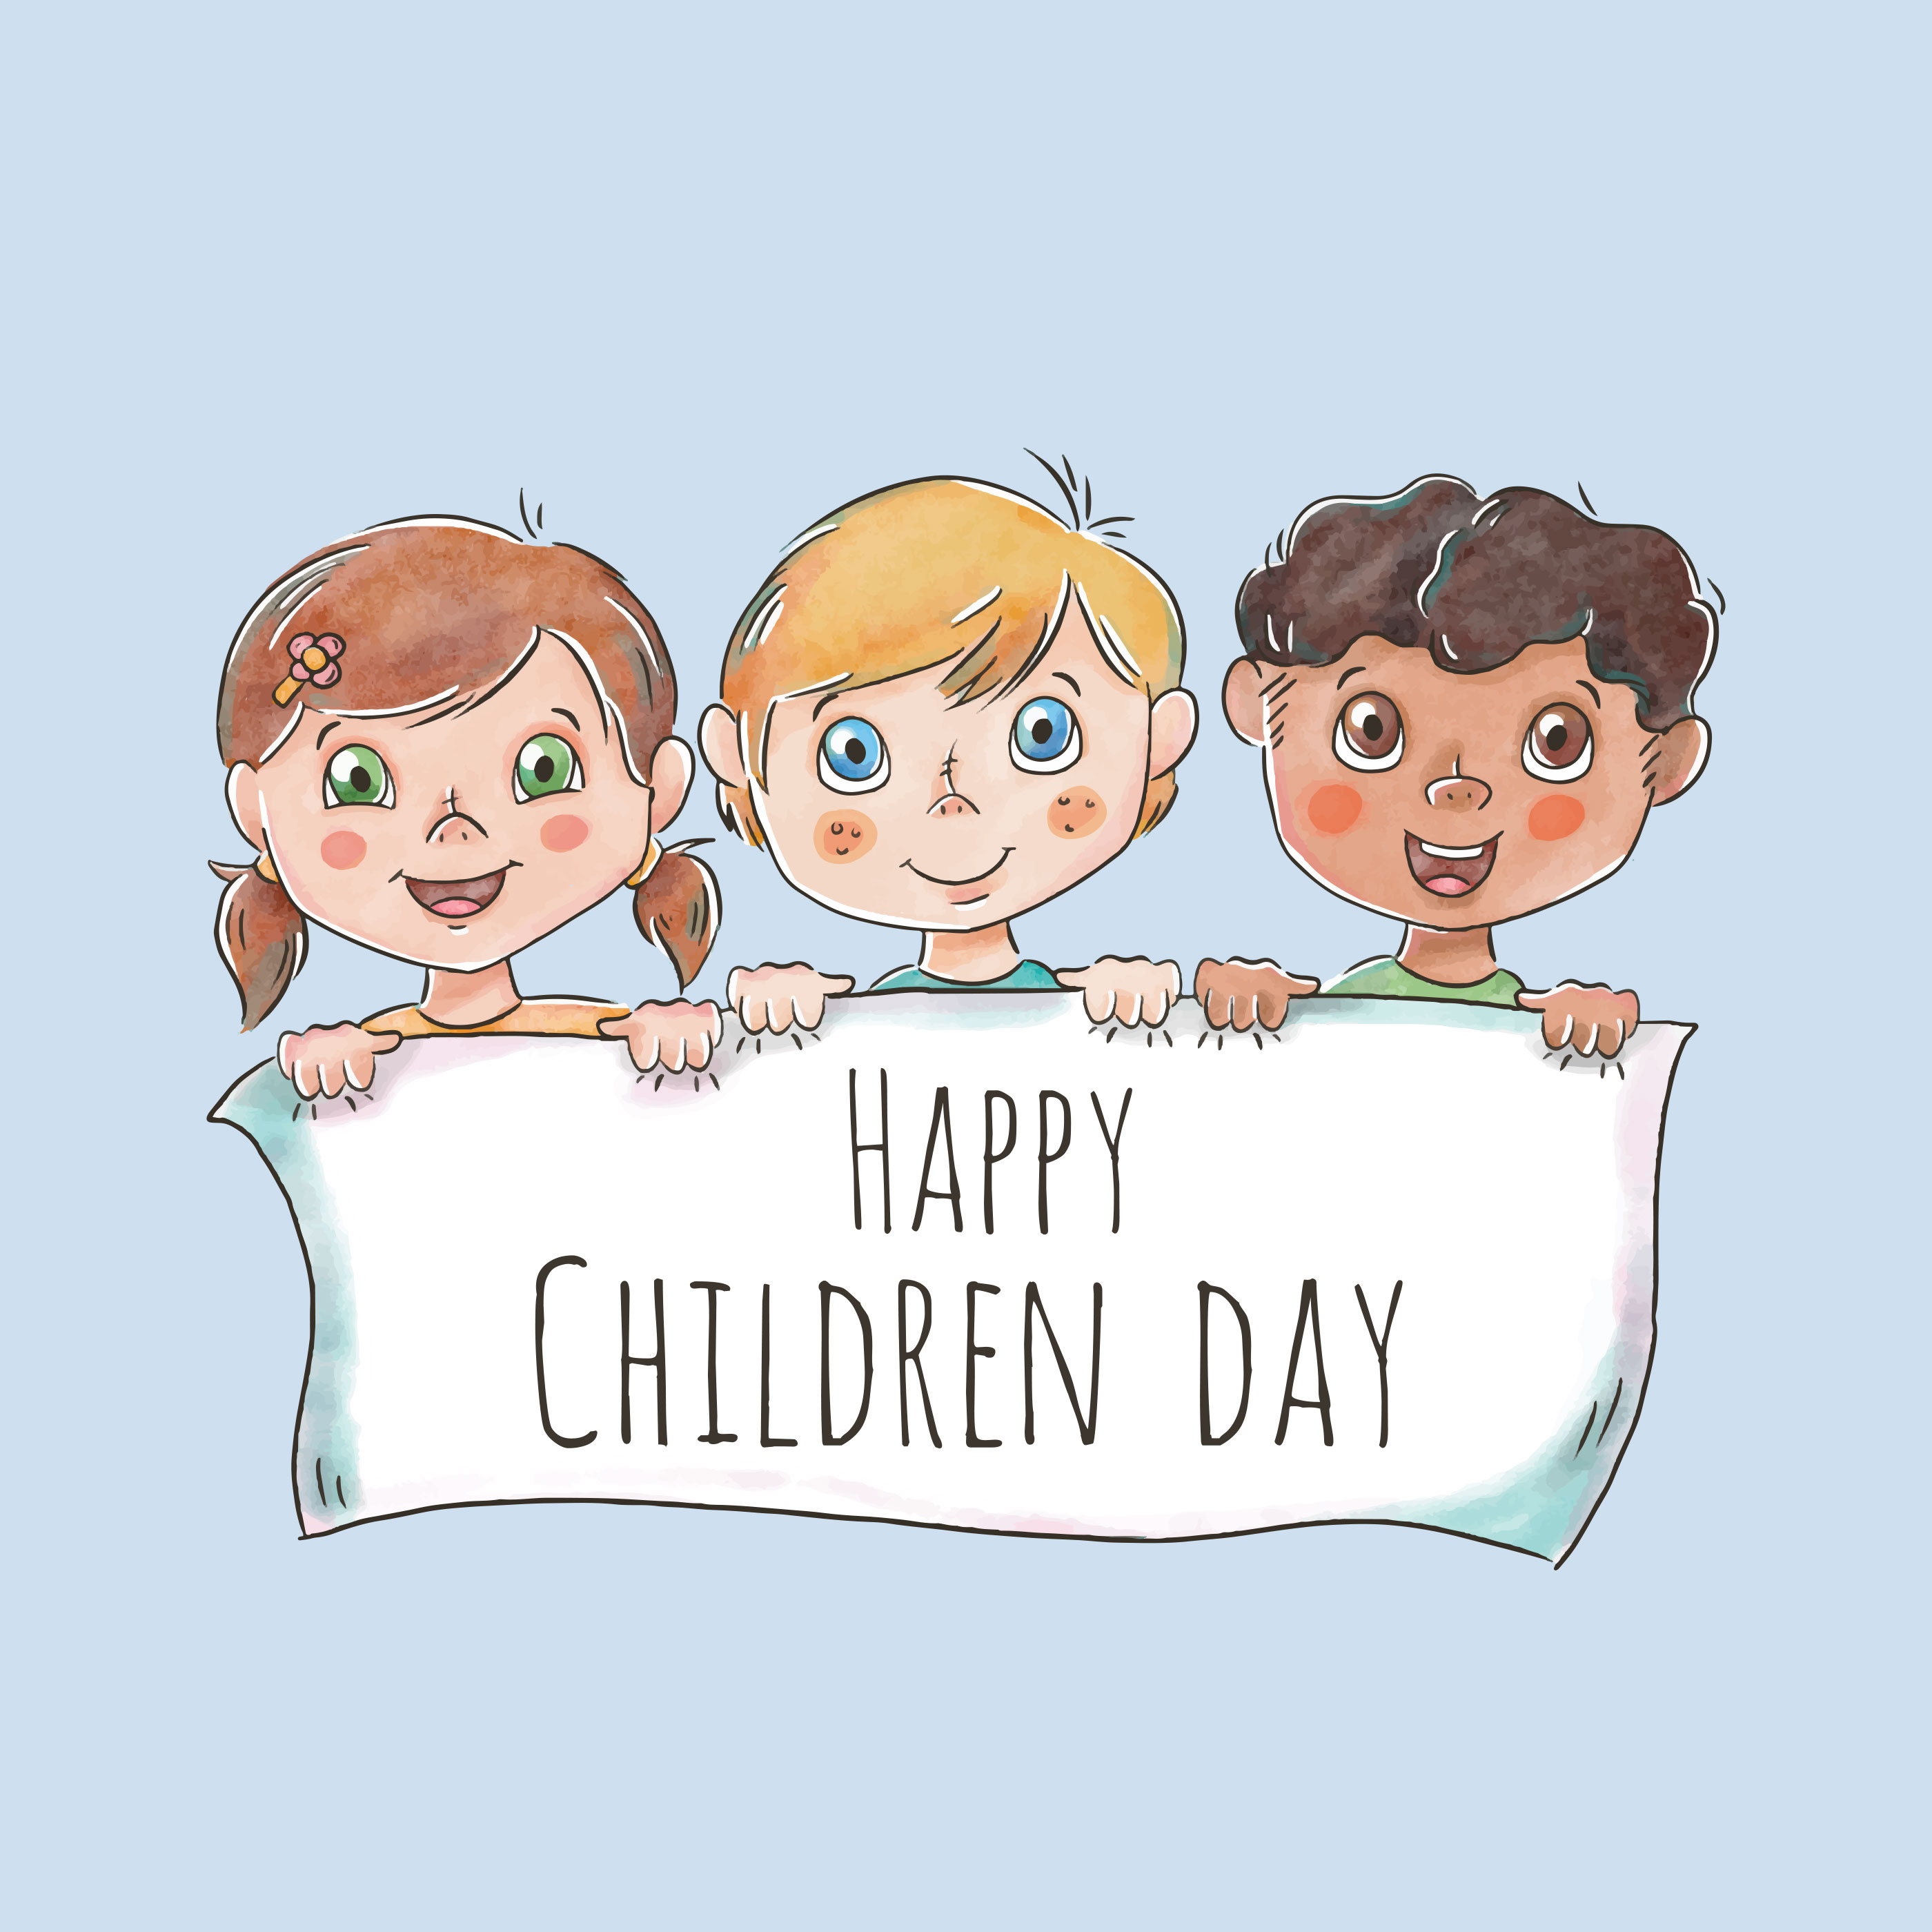 Cute children character holding white banner for children day download free vector art stock - Children s day images download ...